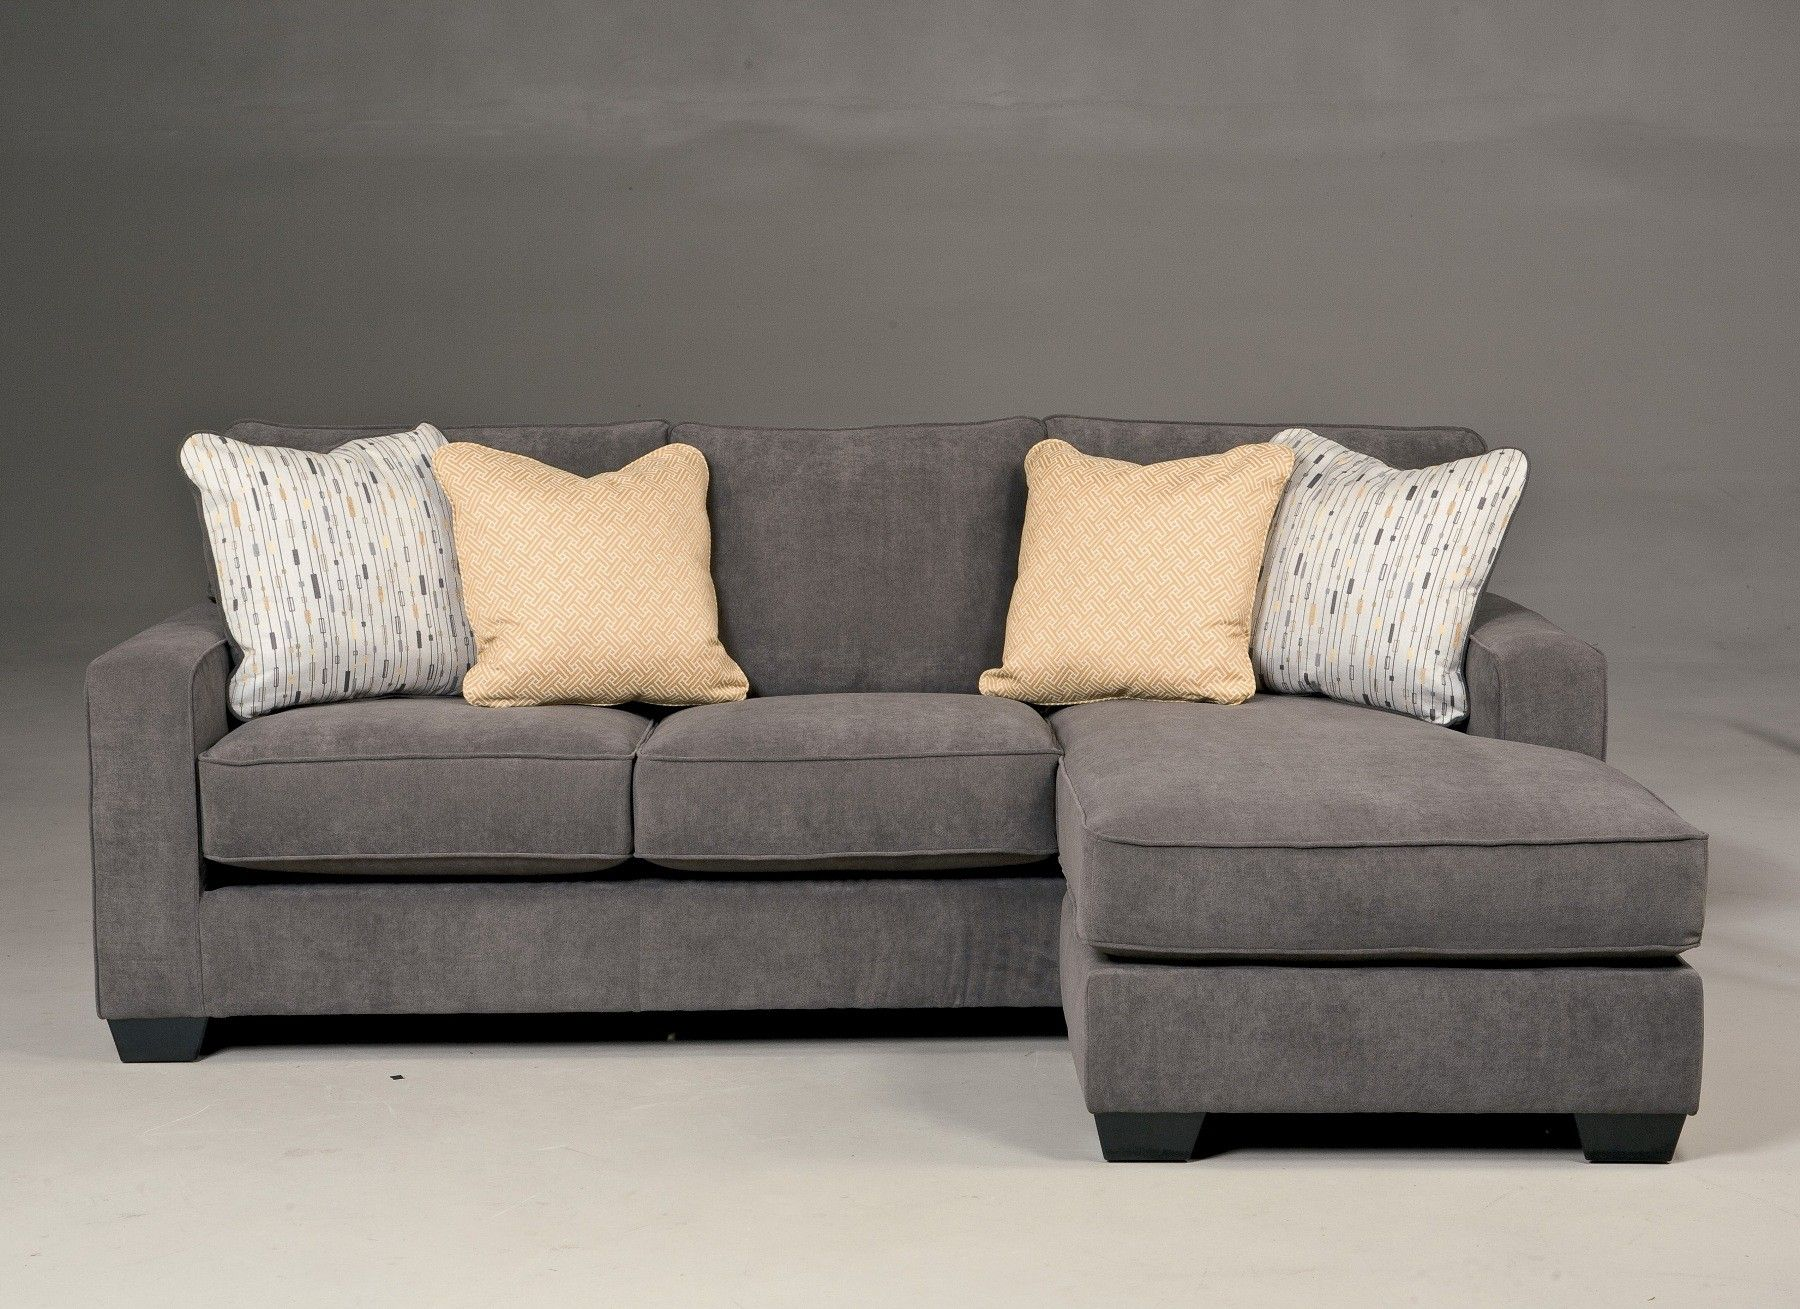 types of sofas materials cheap 100 leather ashley furniture pinterest marbles fabrics and living